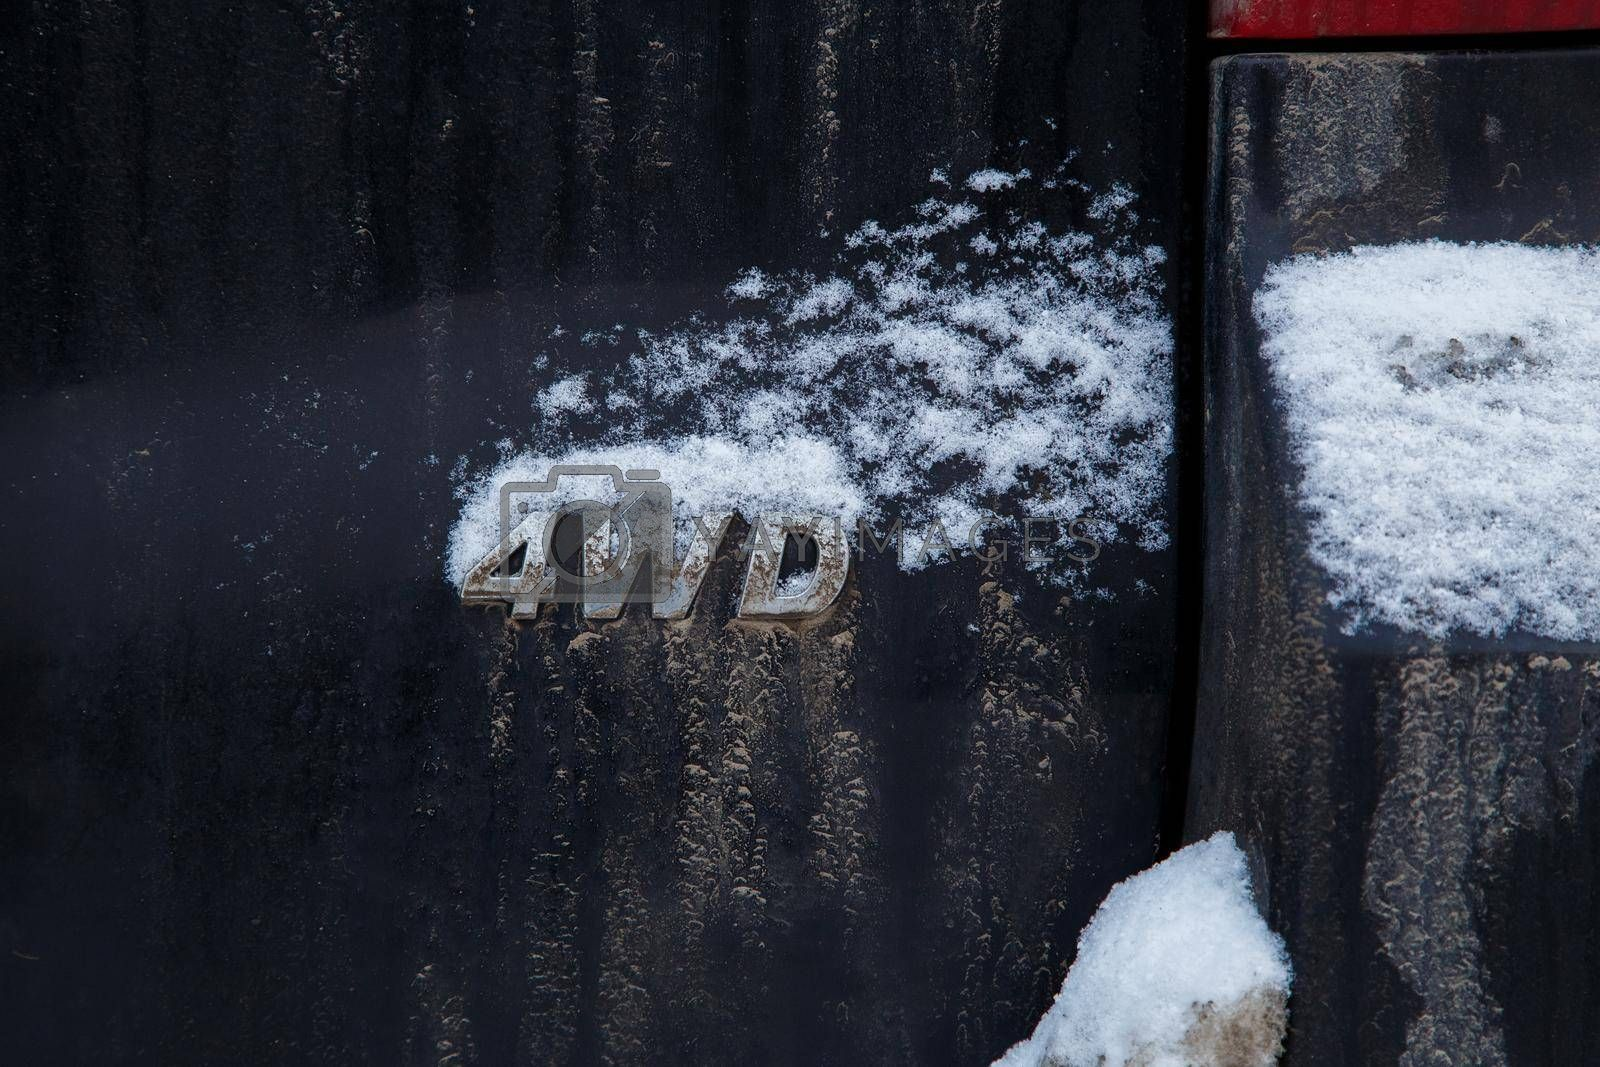 an abbreviation 4wd - four wheel drive - on dirty black car back, with snow